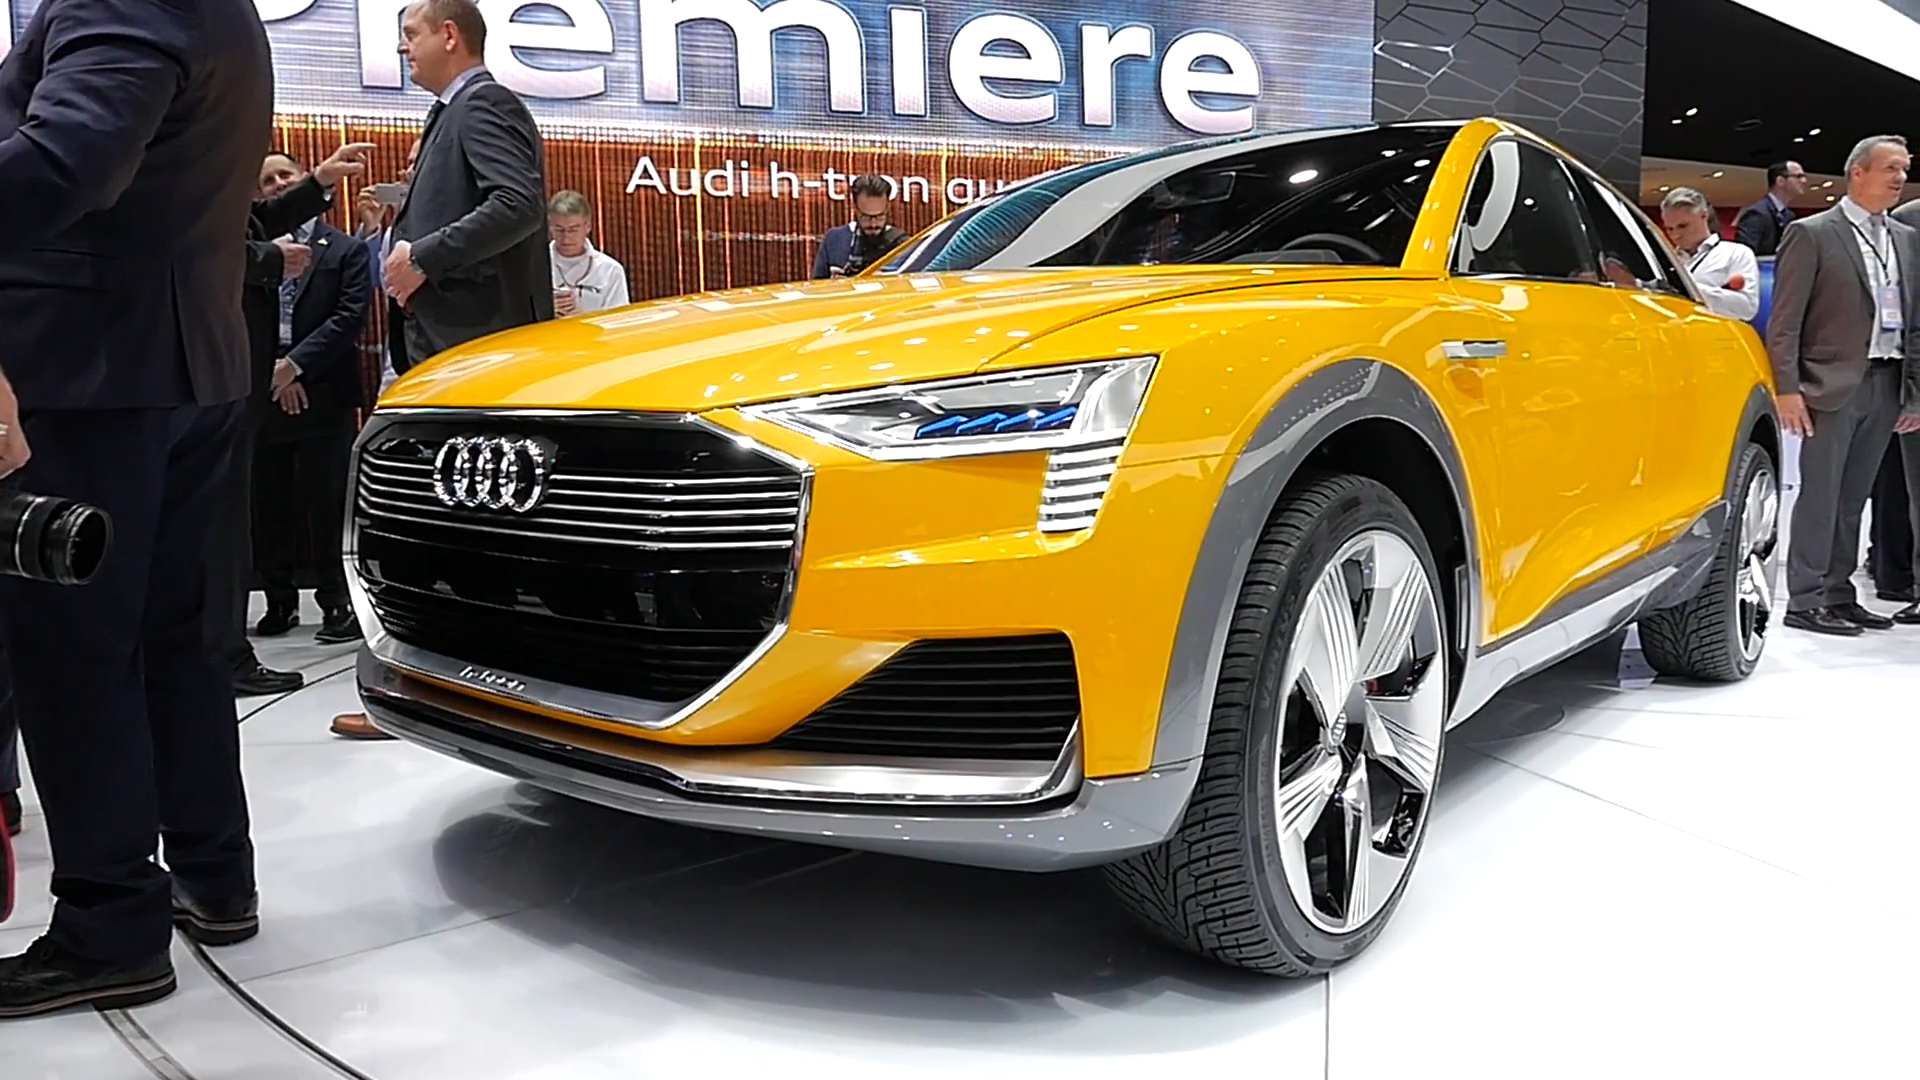 2018 Audi SQ5 will use 48-volt electric supercharger - Autoblog